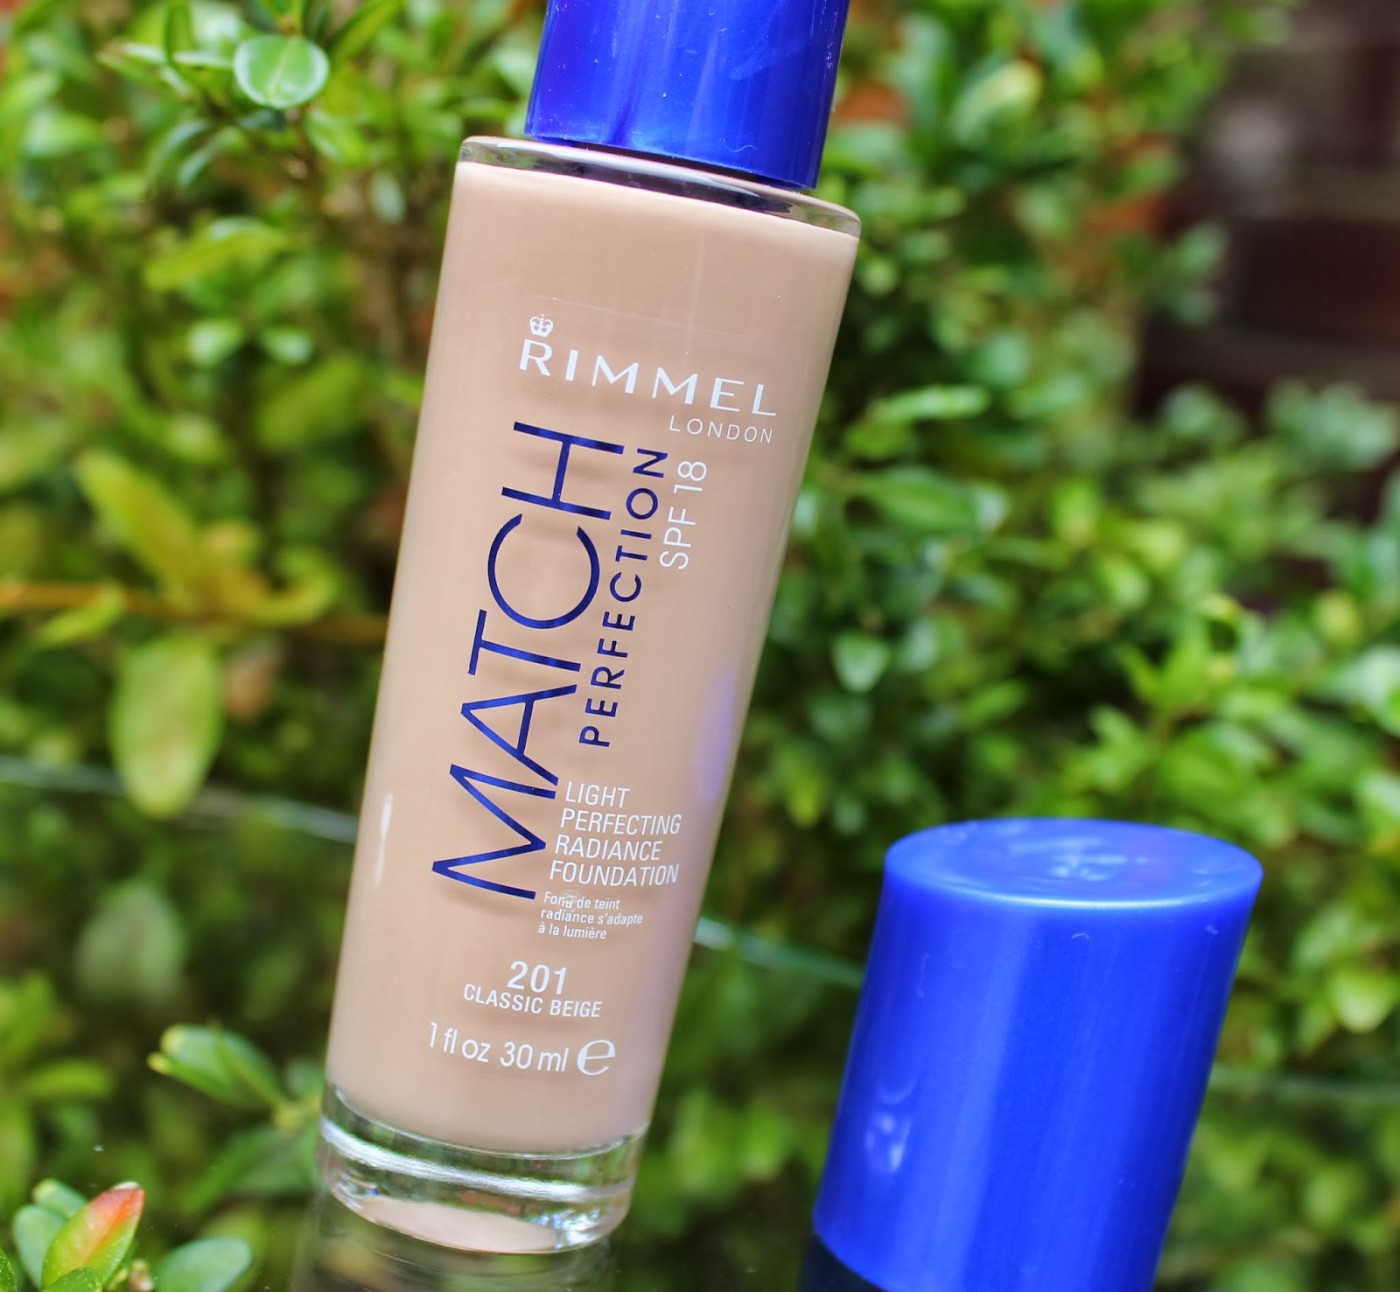 rimmel, rimmel london, rimmel match perfection foundation, rimmel match perfection classic beige 201,review, through chelsea's eyes,